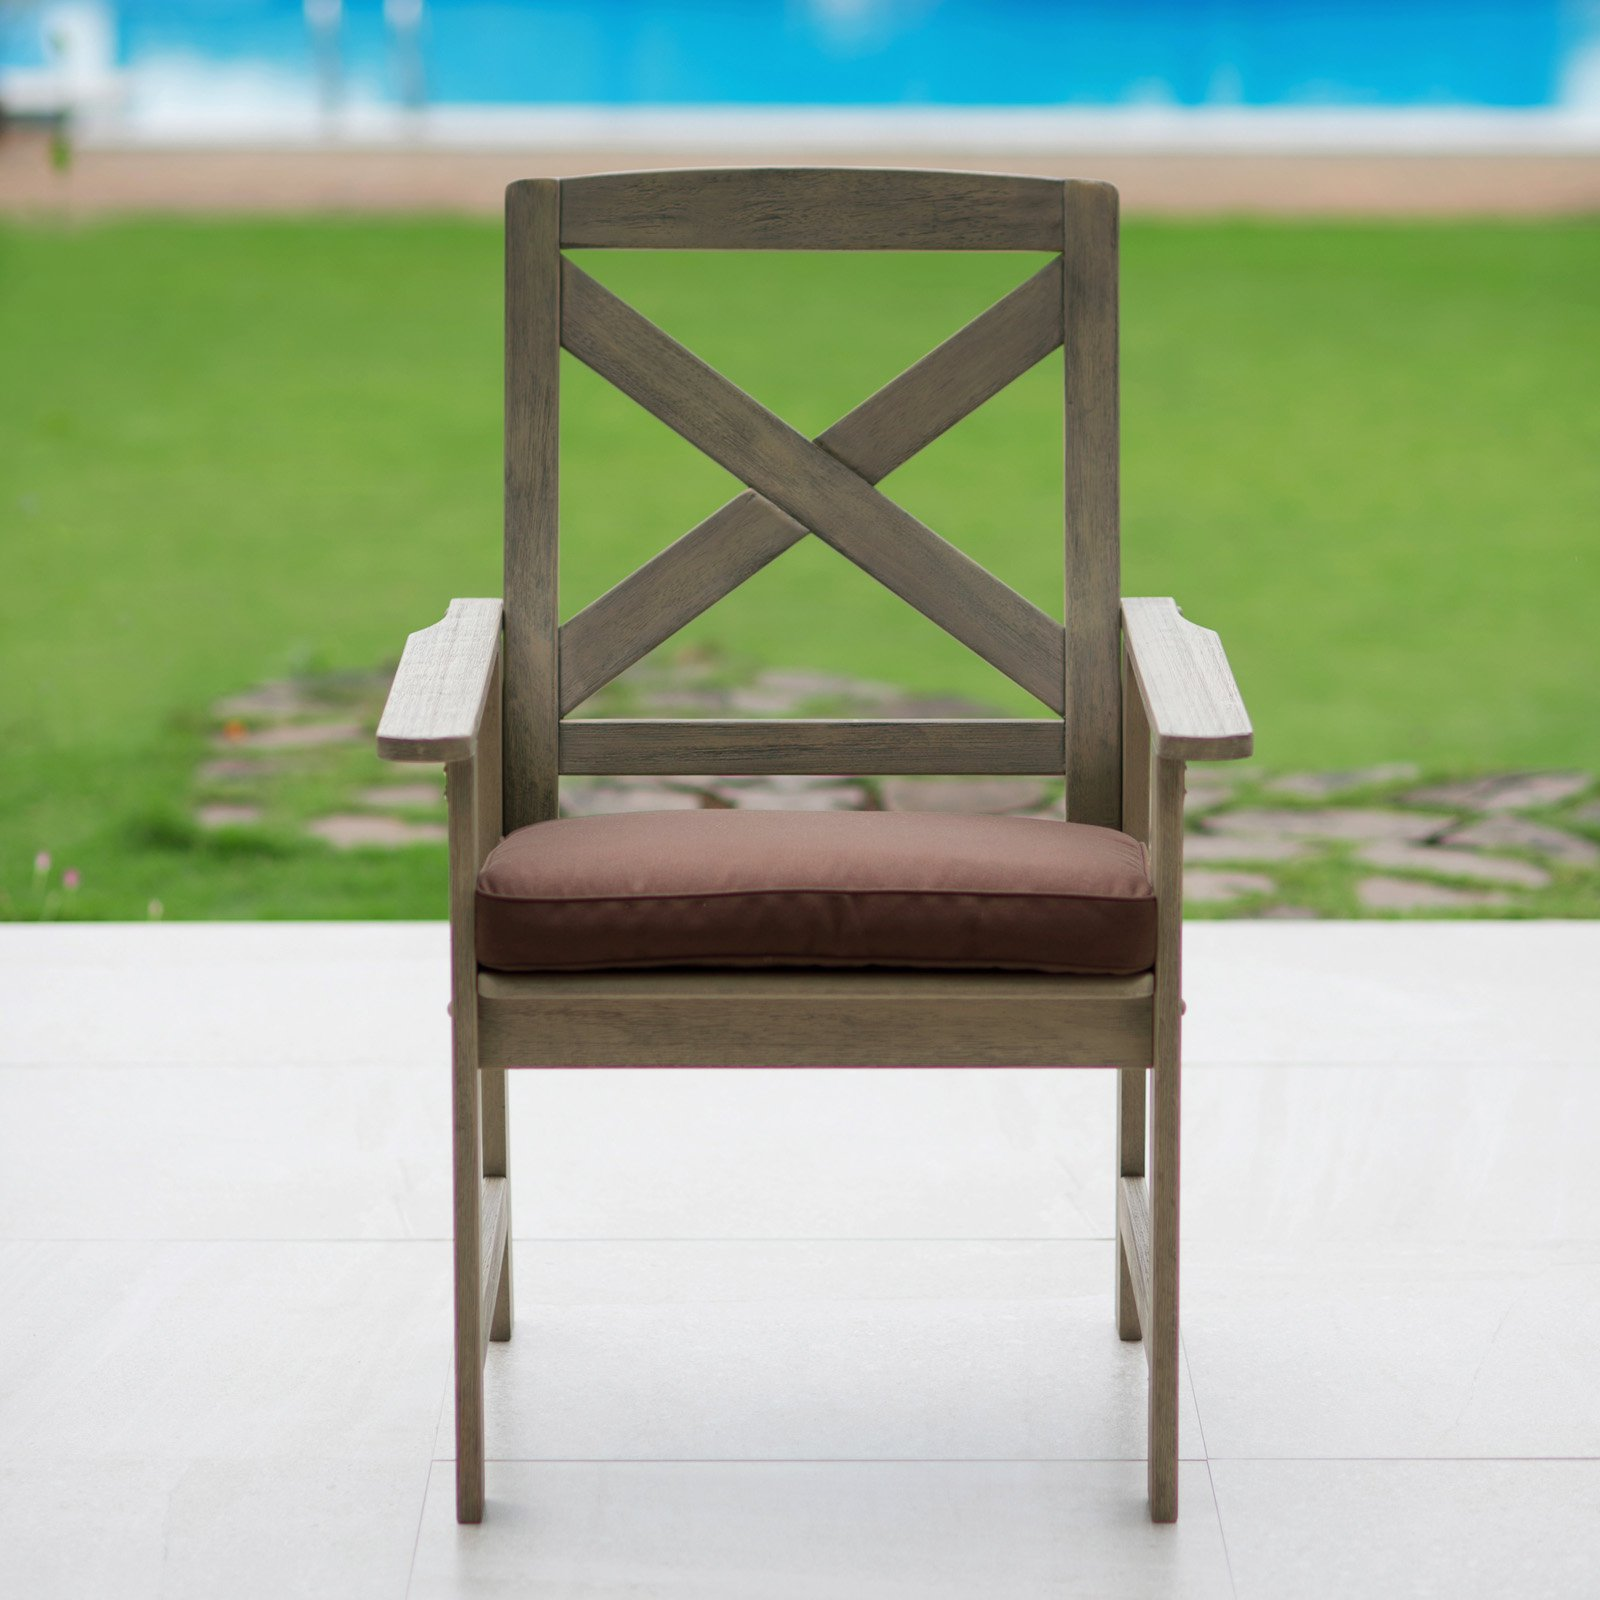 Cambridge Casual West Lake Dining Patio Chair with Cushion - Set of 2